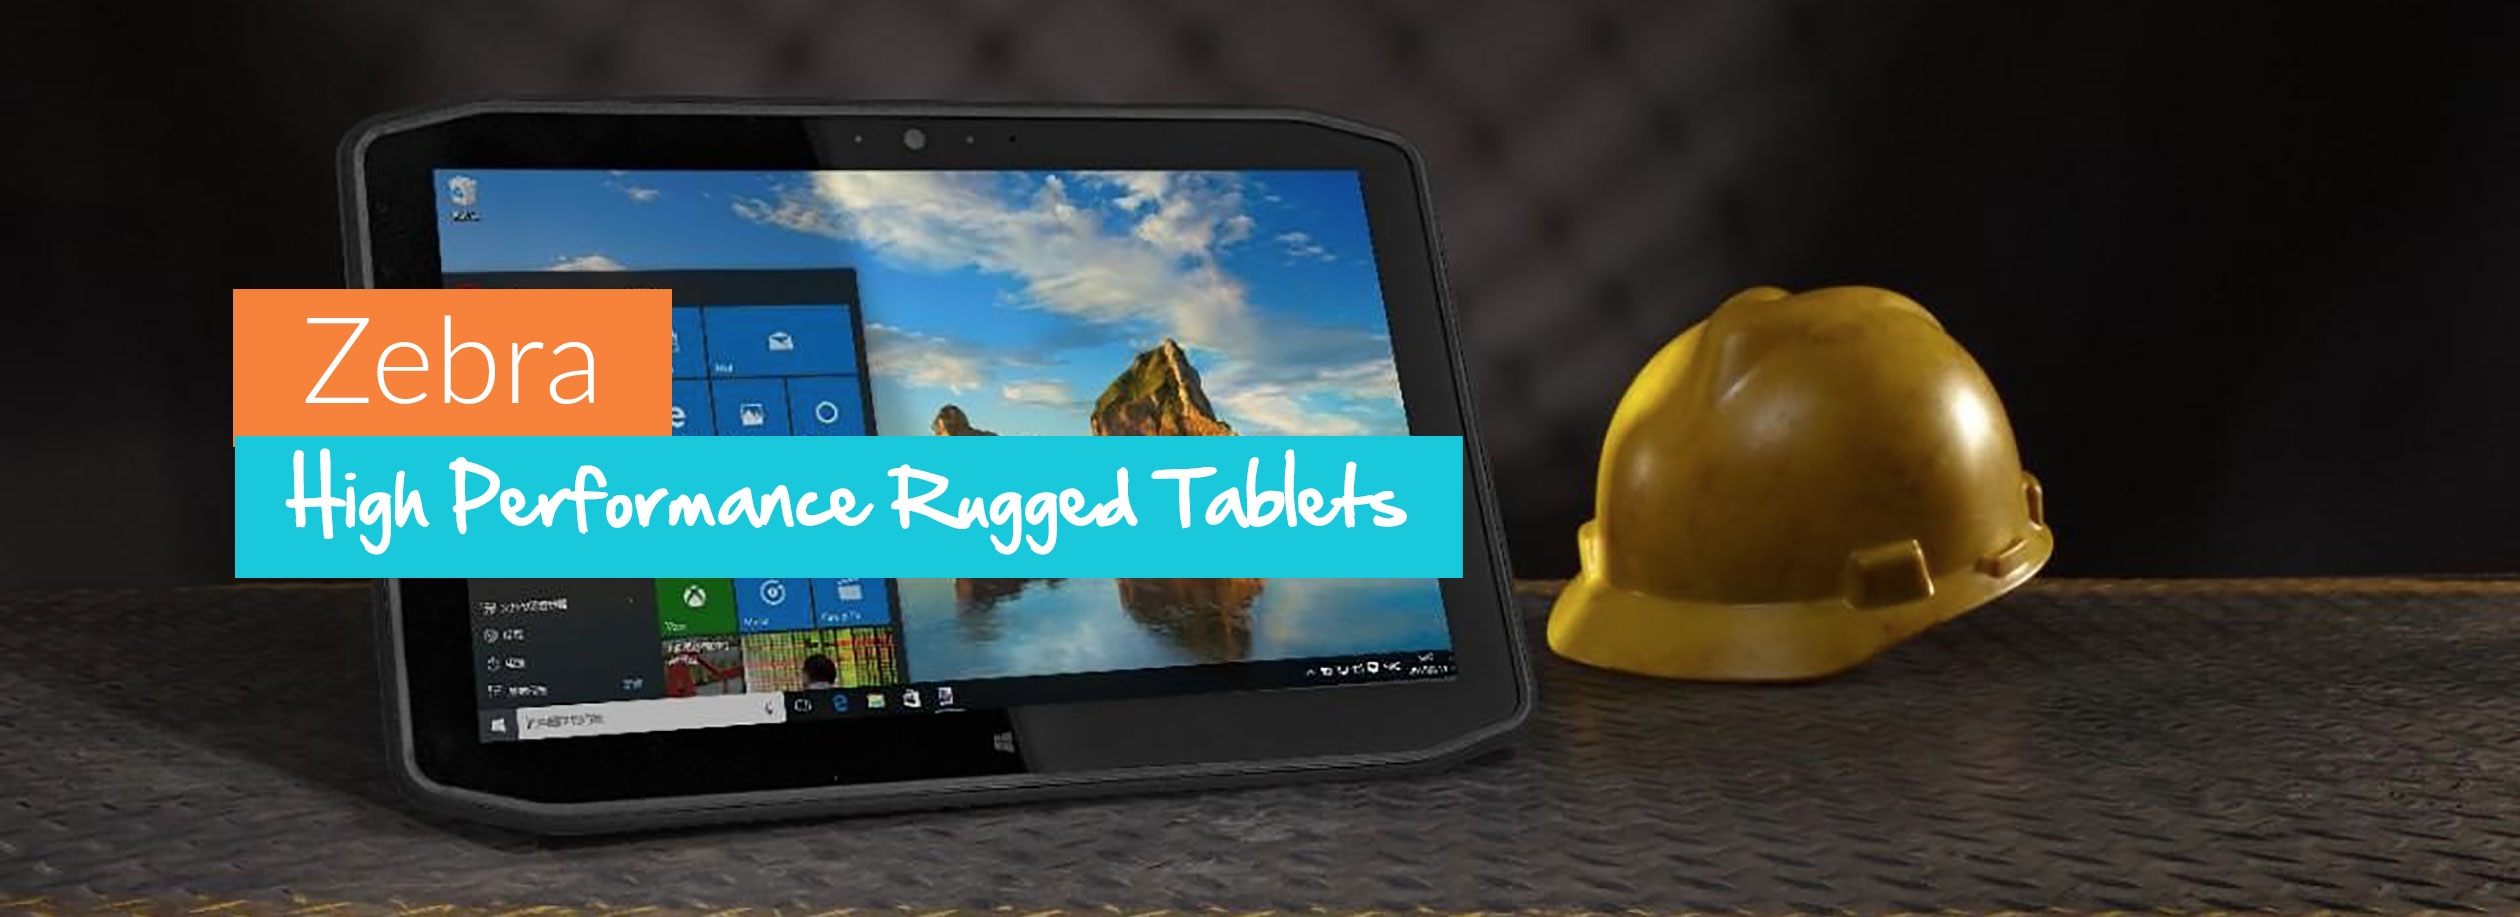 Zebra Tablets - High Performance Rugged Tablets